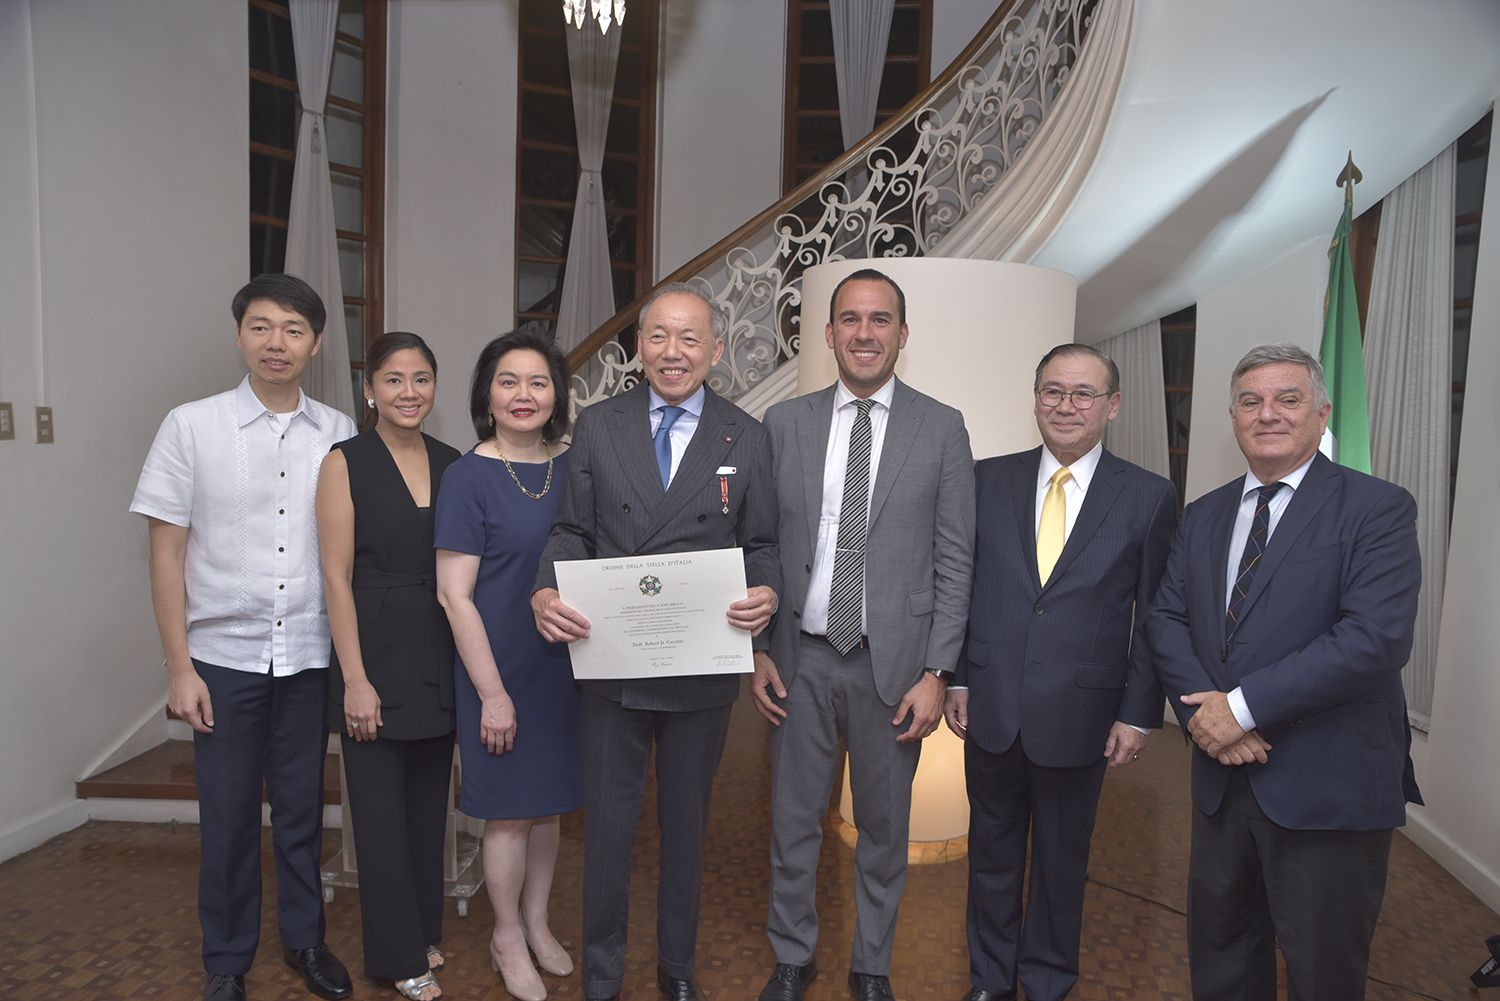 Robert Coyiuto Jr receives Order of the Star from the Italian Government